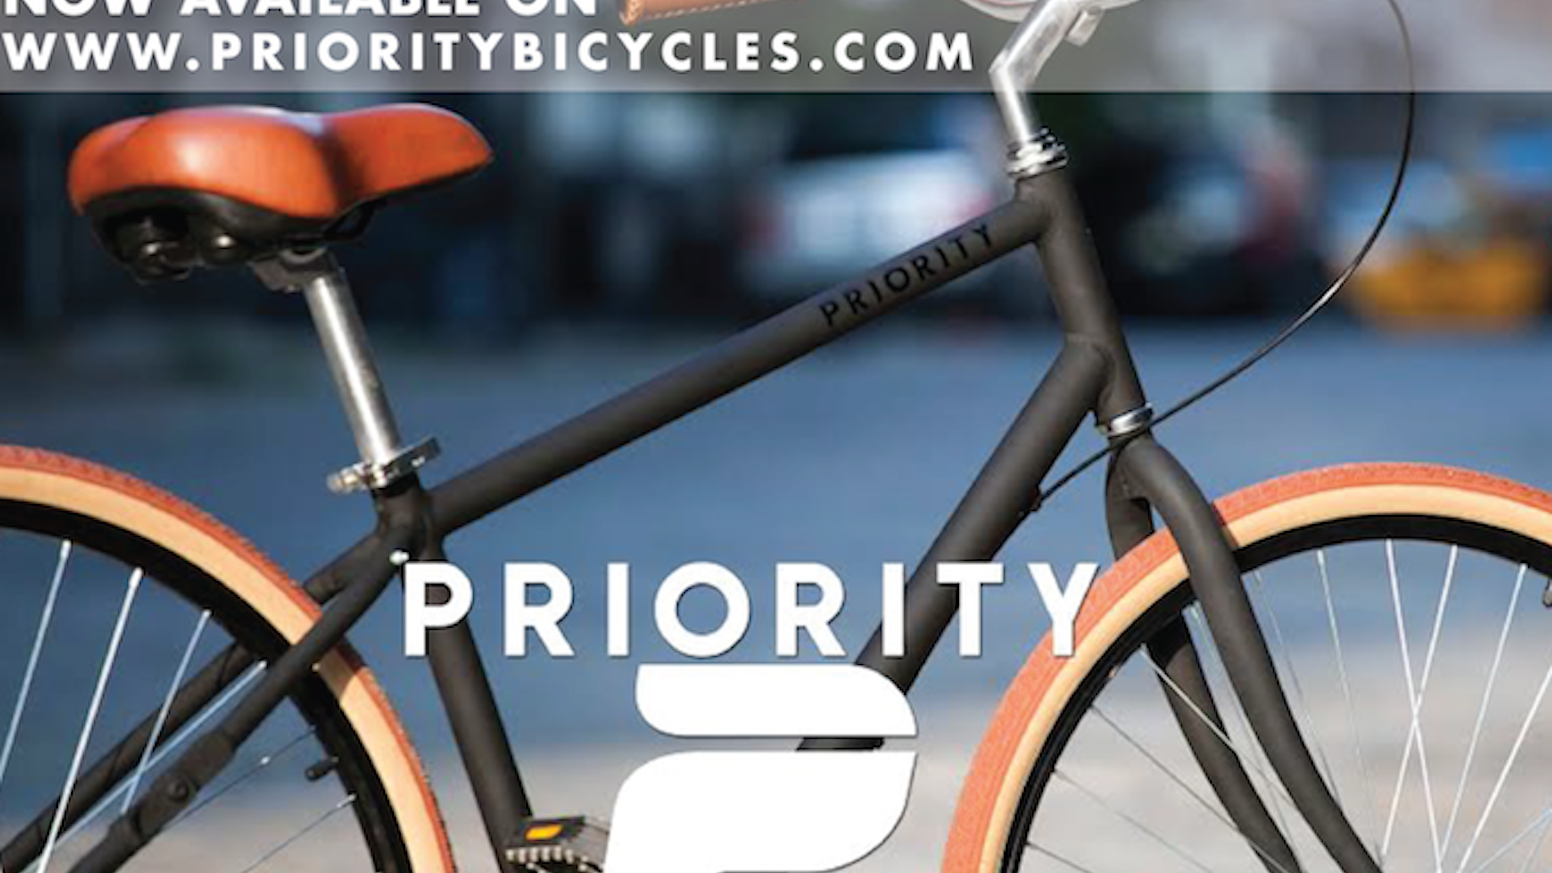 A new concept in cycling, a beautifully designed bike with smart engineering & low cost. Quality with no compromise, Priority Bicycles